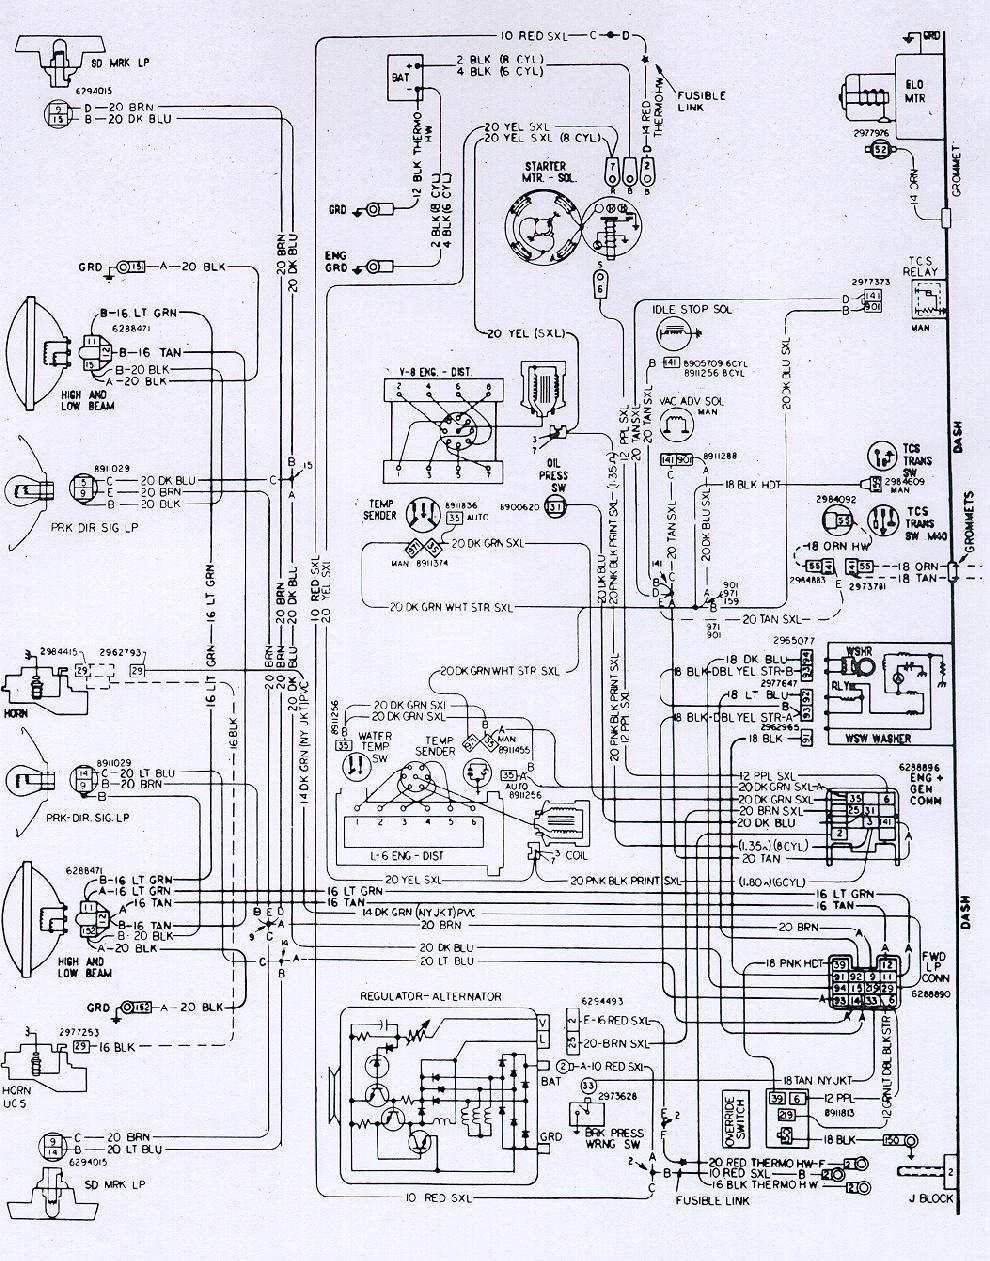 medium resolution of camaro wiring electrical information 2002 camaro exhaust 2002 camaro dash fuse diagram